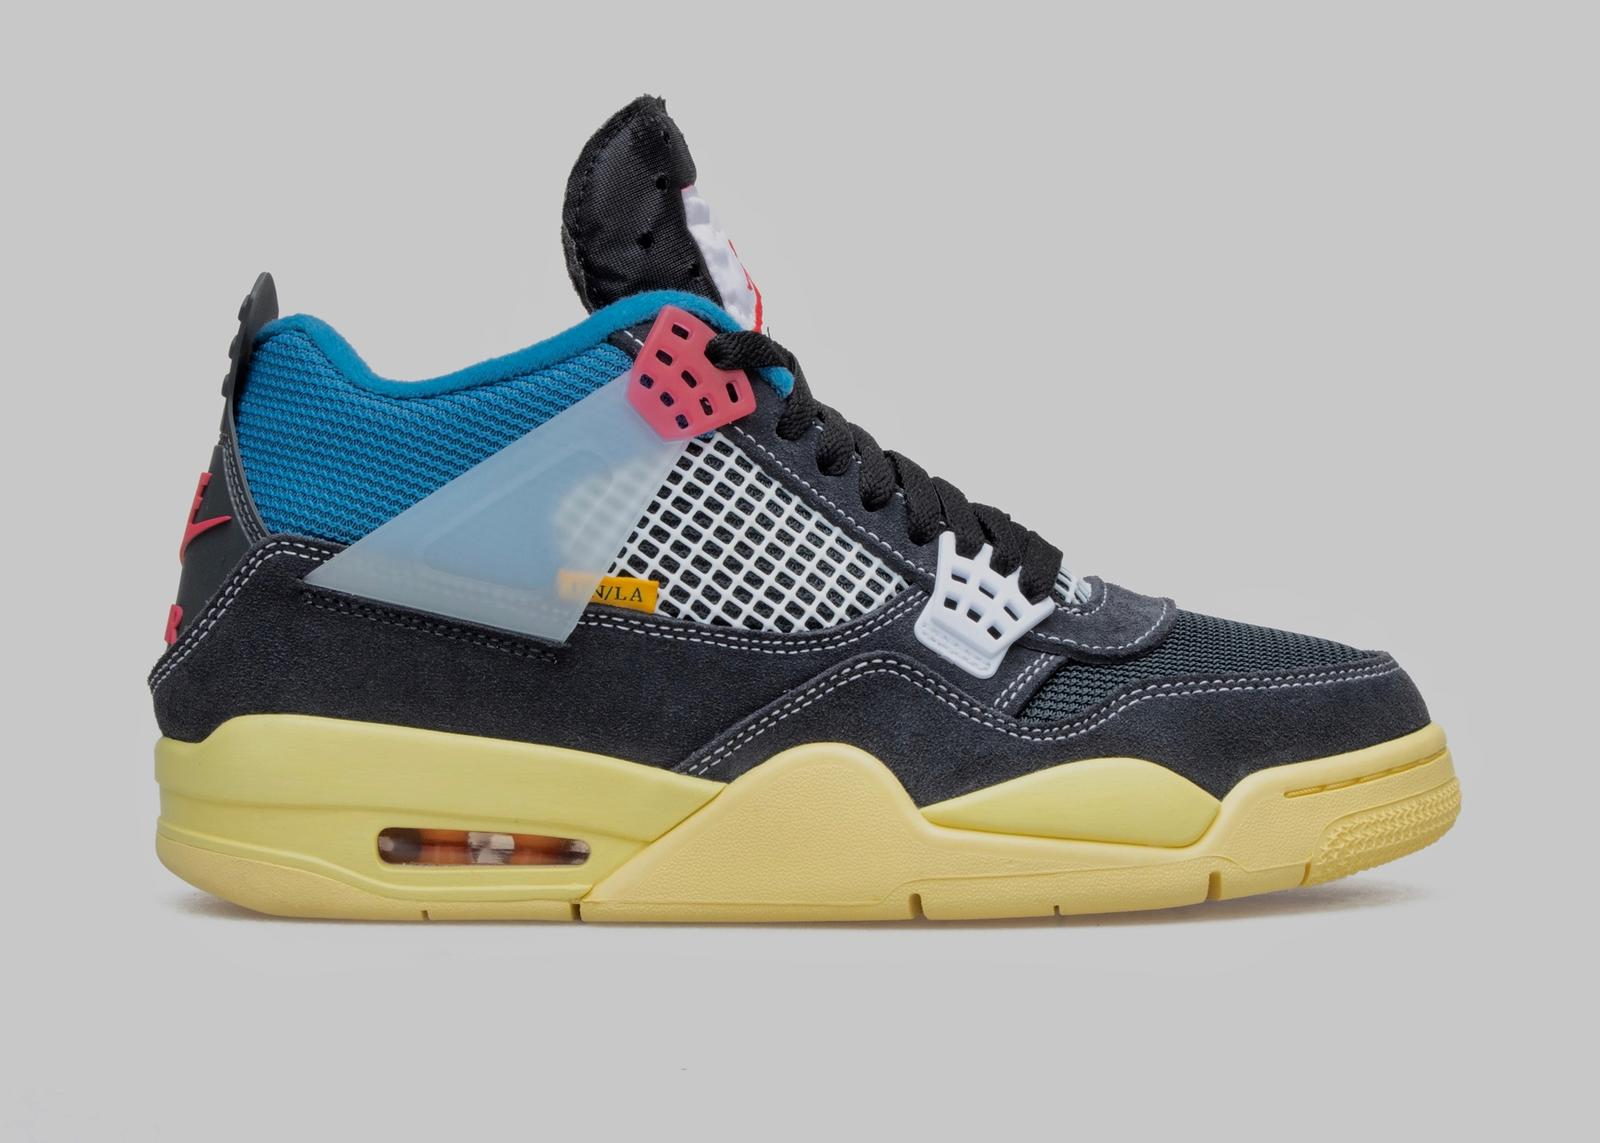 Jordan x Union Air Jordan 4, Zoom 92 and Delta Official Release Info 29